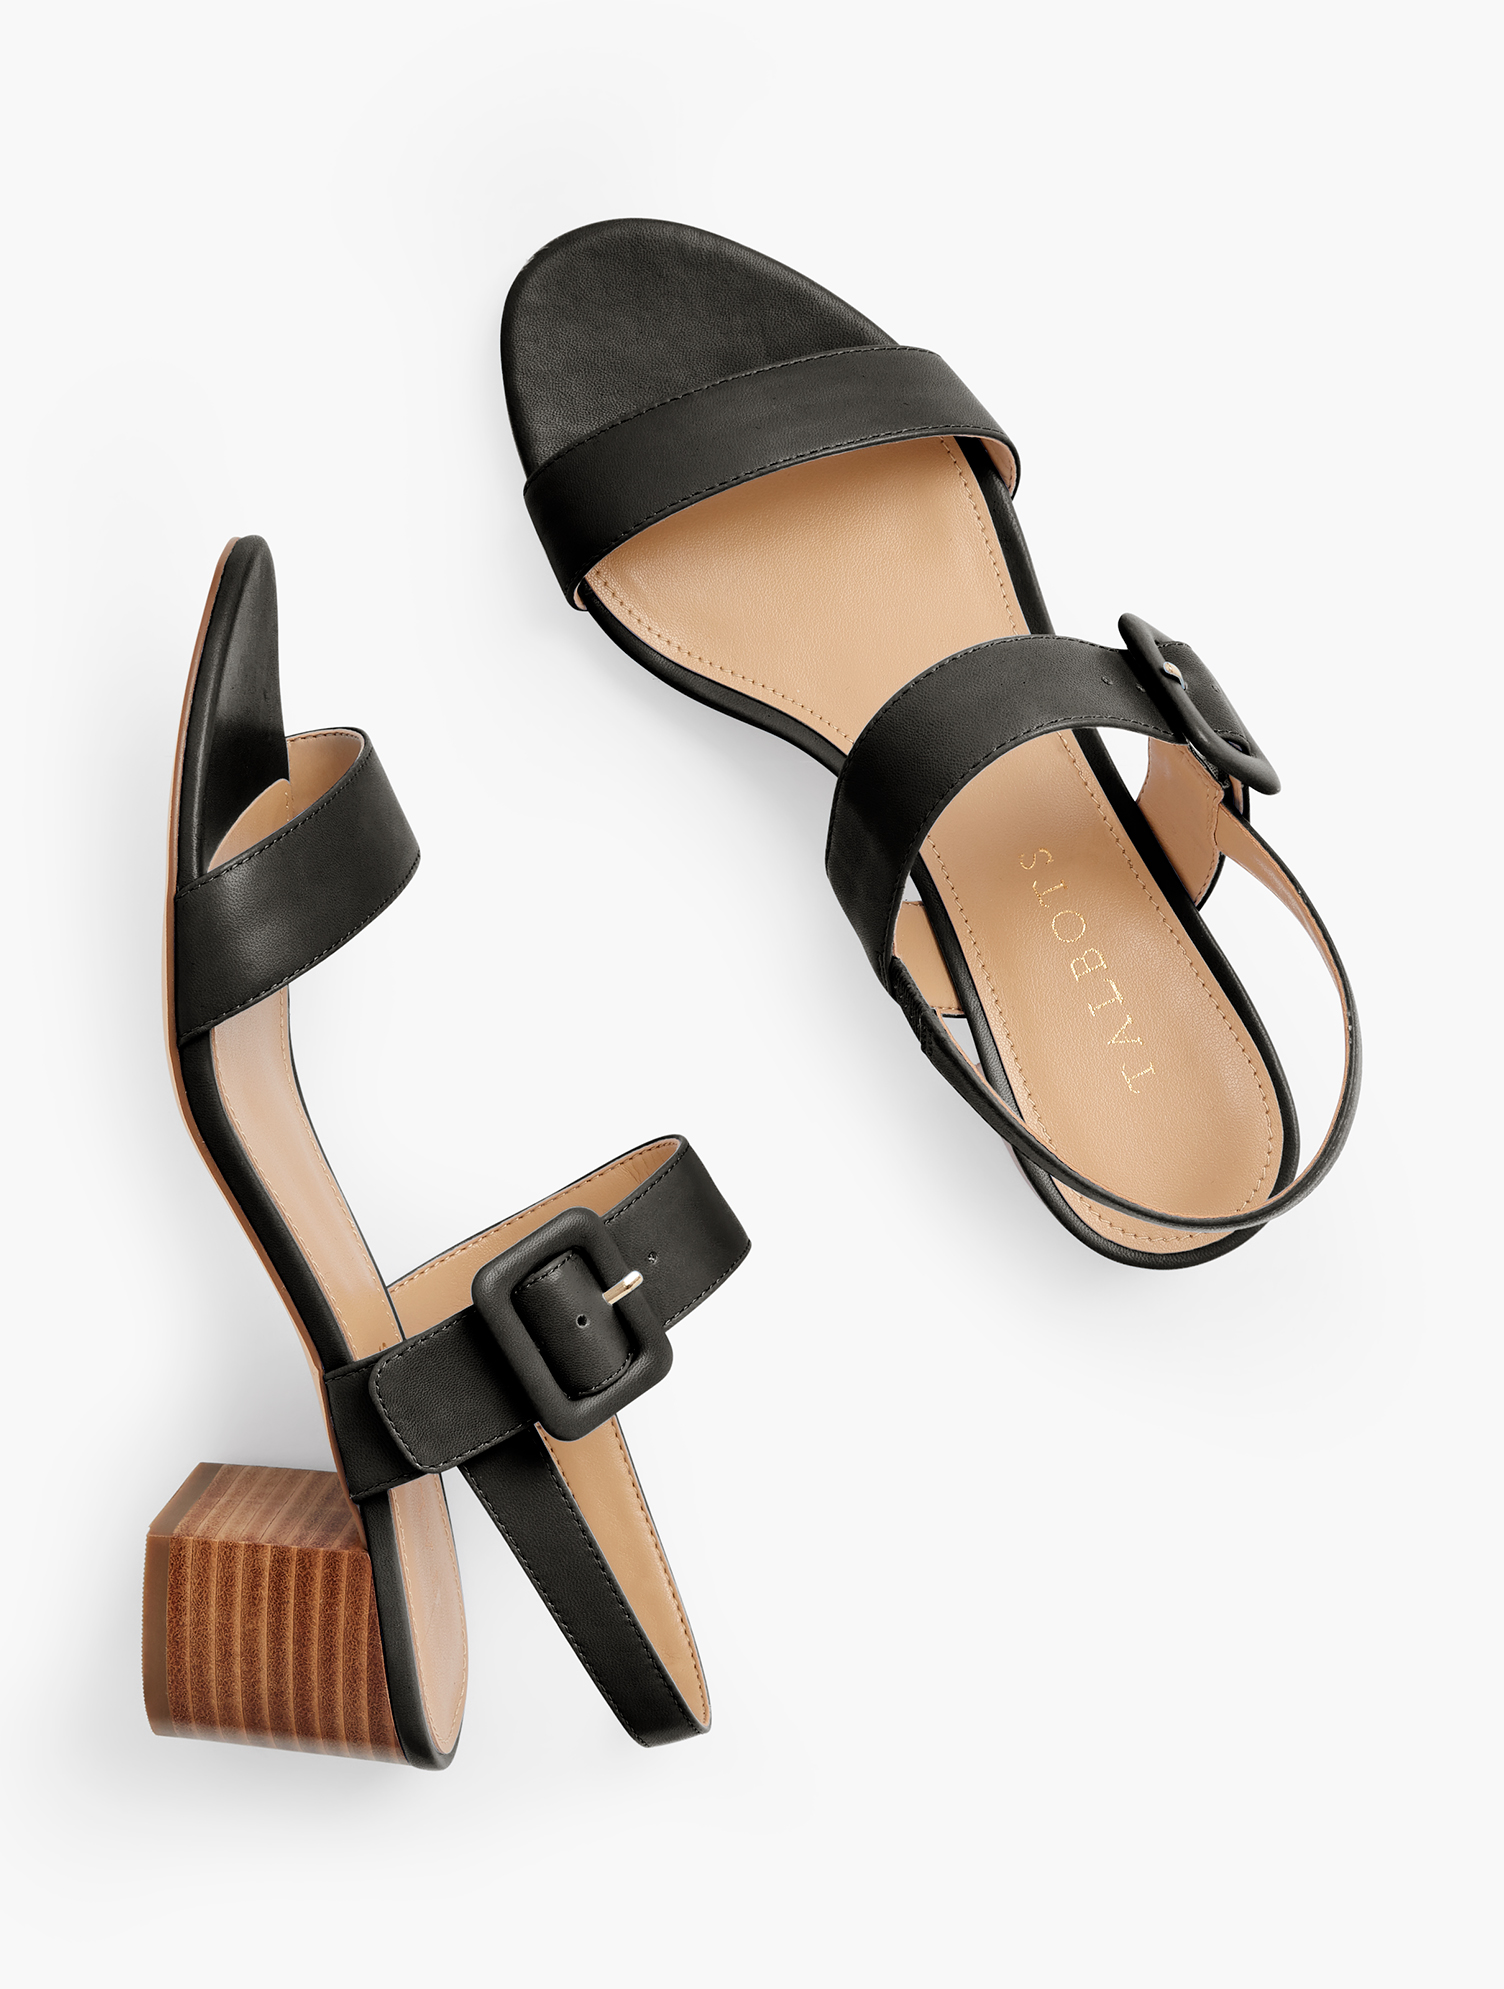 Our chic Mimi block-heel sandals. With fashionable, buckle closure. Crafted from soft Nappa leather for comfort and luxury. Features 2 inches heelFlexible Non Skid Sole3Mm Memory Foam FootbedImported Material: 100% Leather Mimi Leather Block Heel Sandals - Black - 8M Talbots